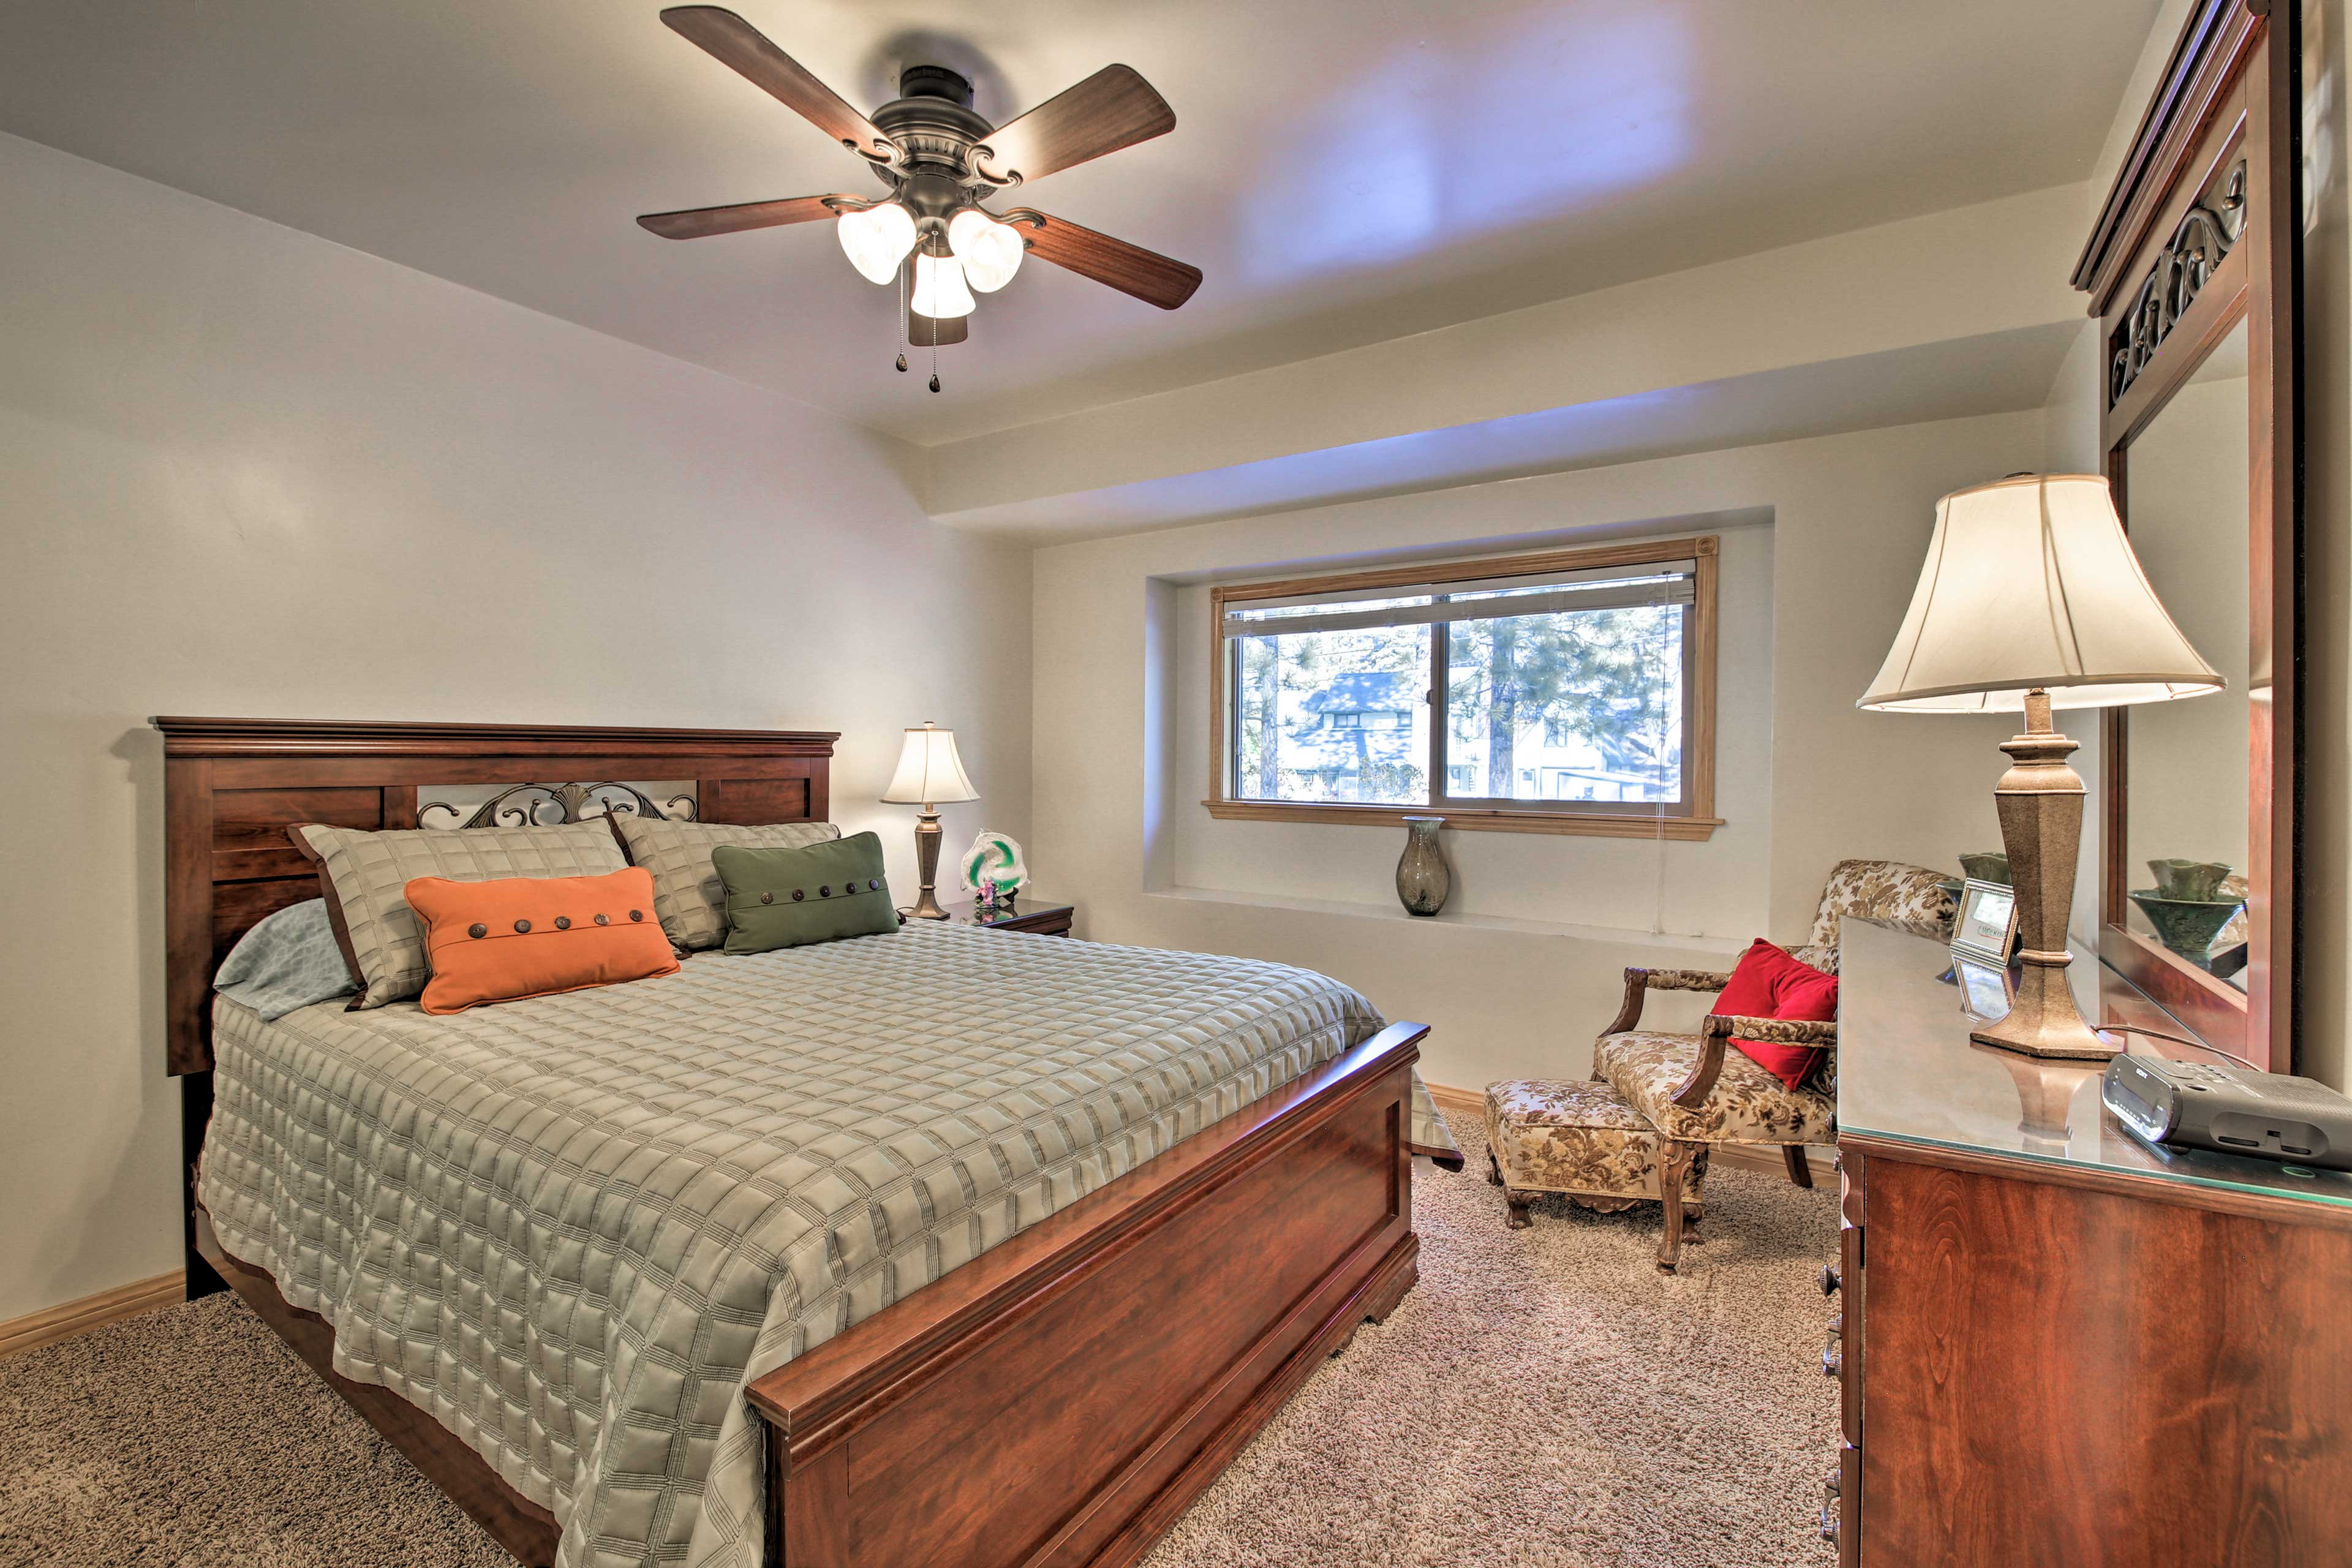 Claim the queen bed as your own!